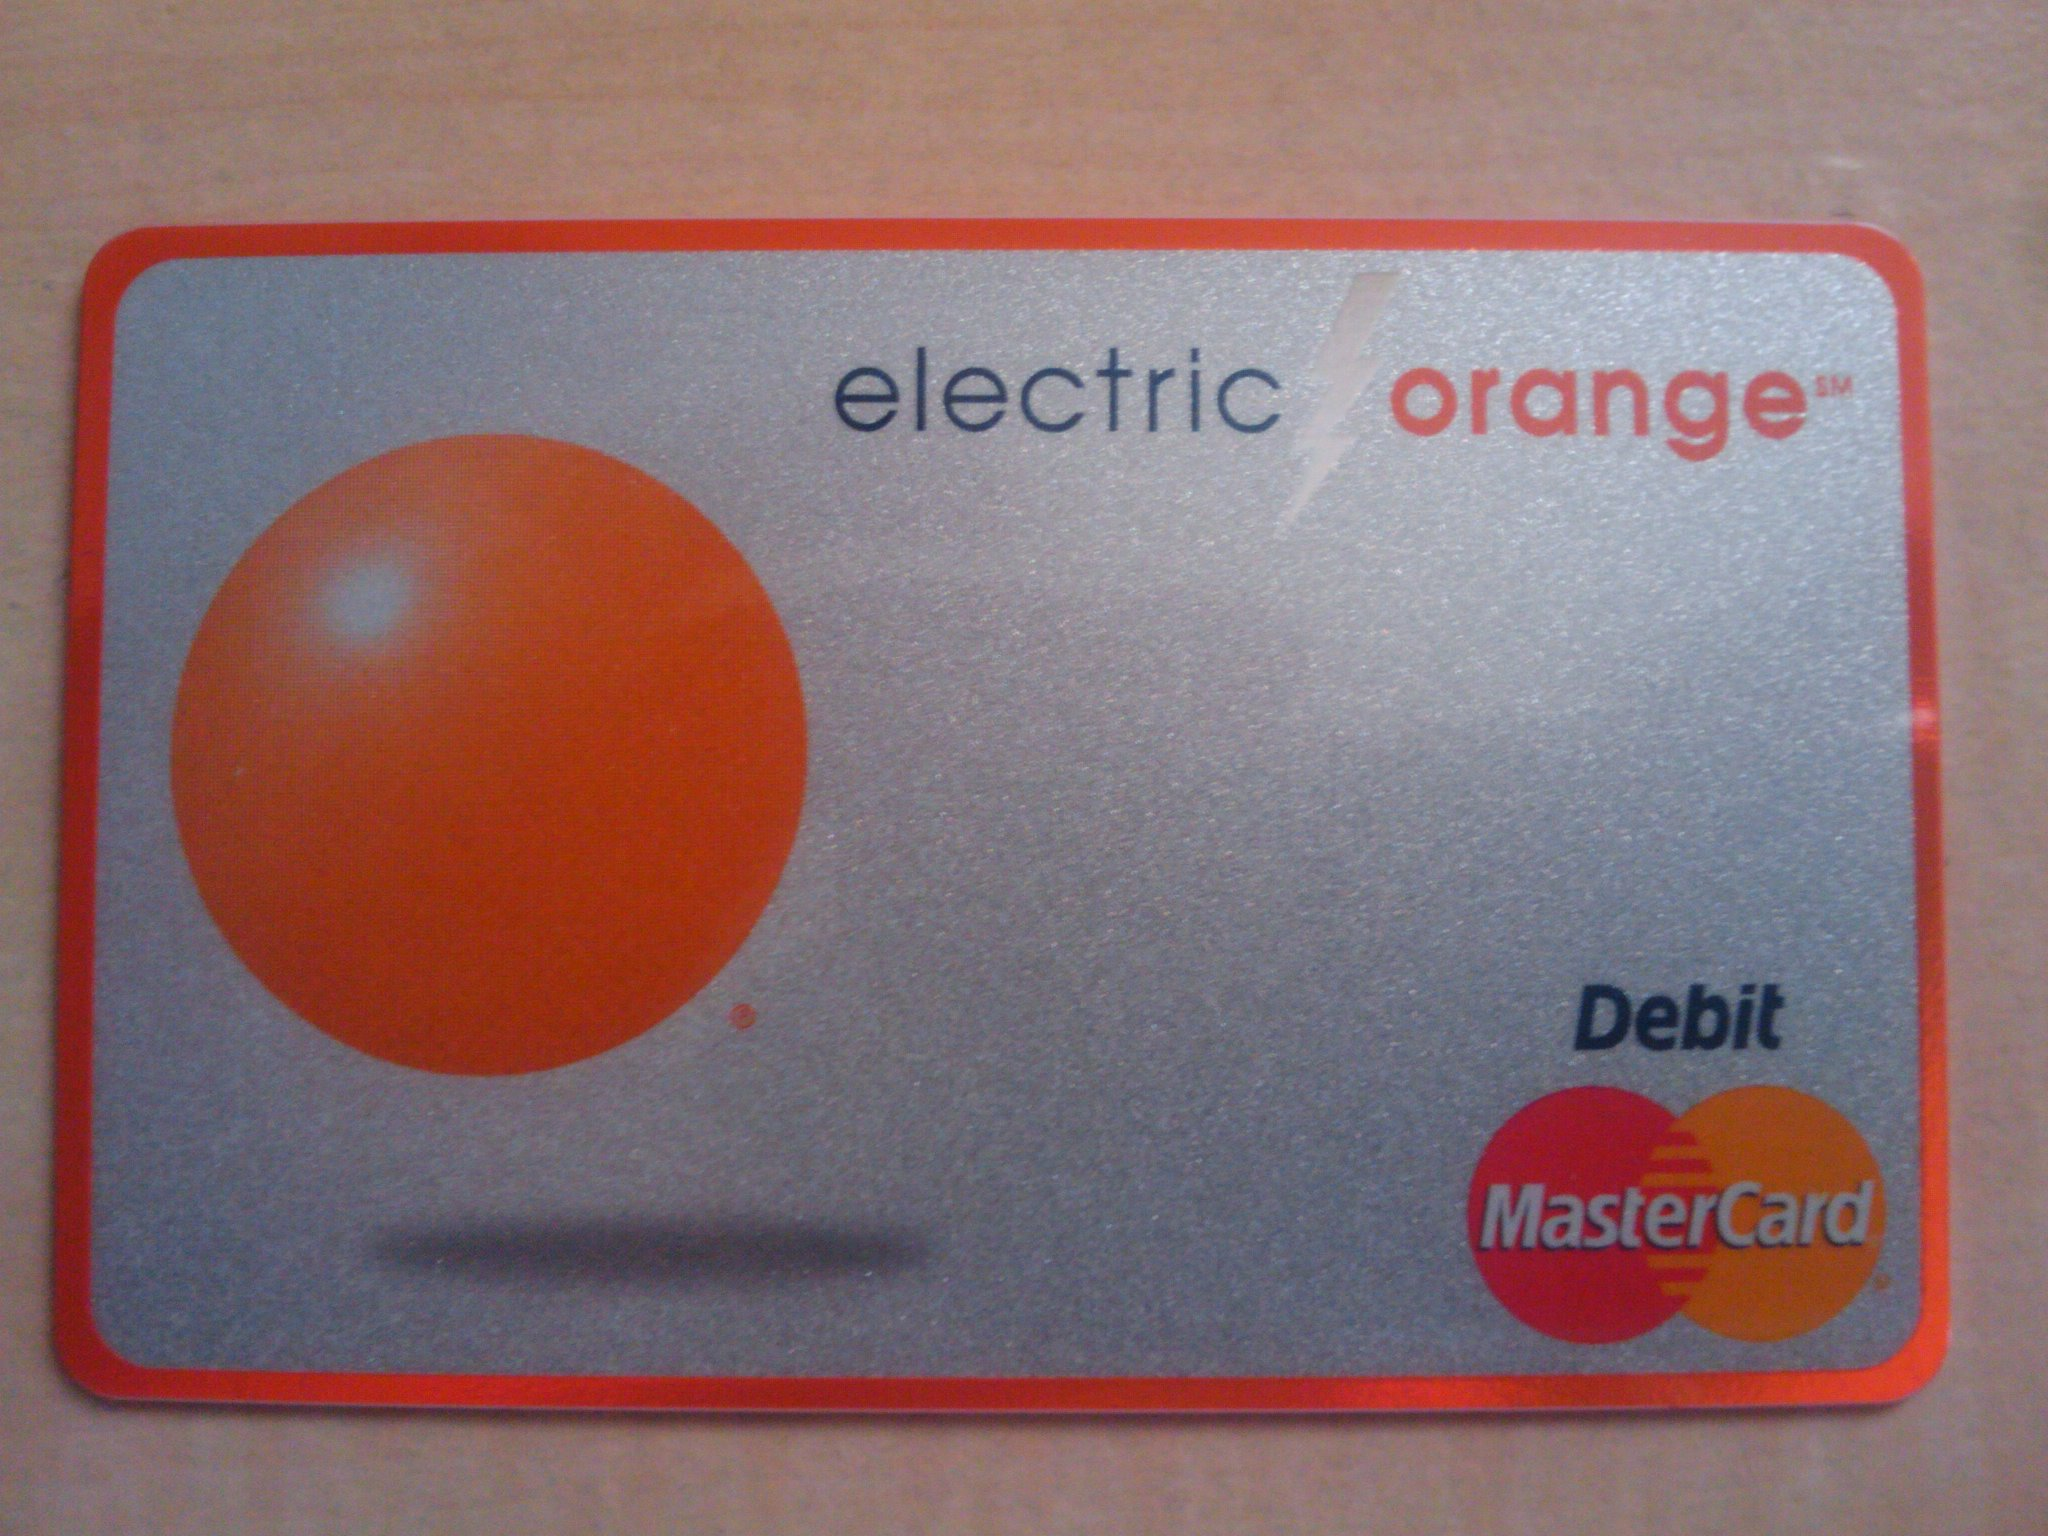 ING New Card INGs New Debit Card For Elec